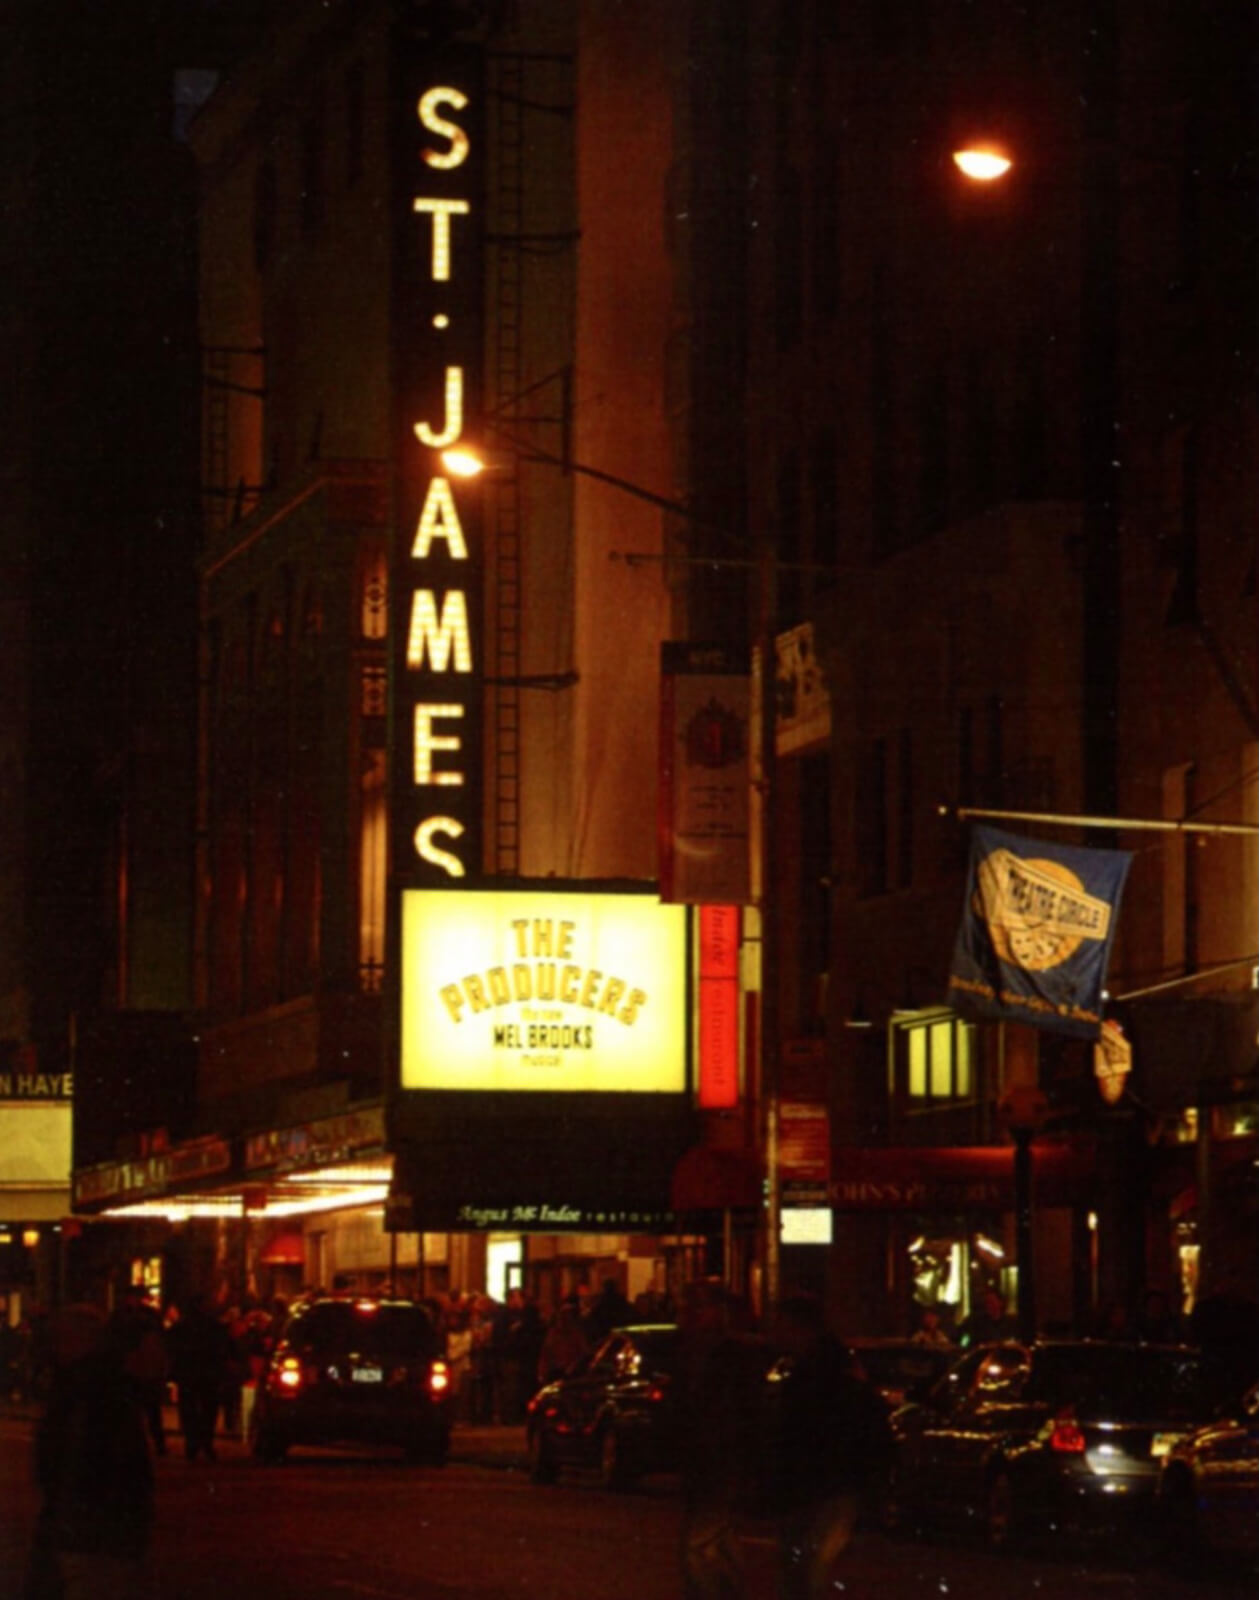 The St. James Theatre at night, showing the marquee of The Producers.